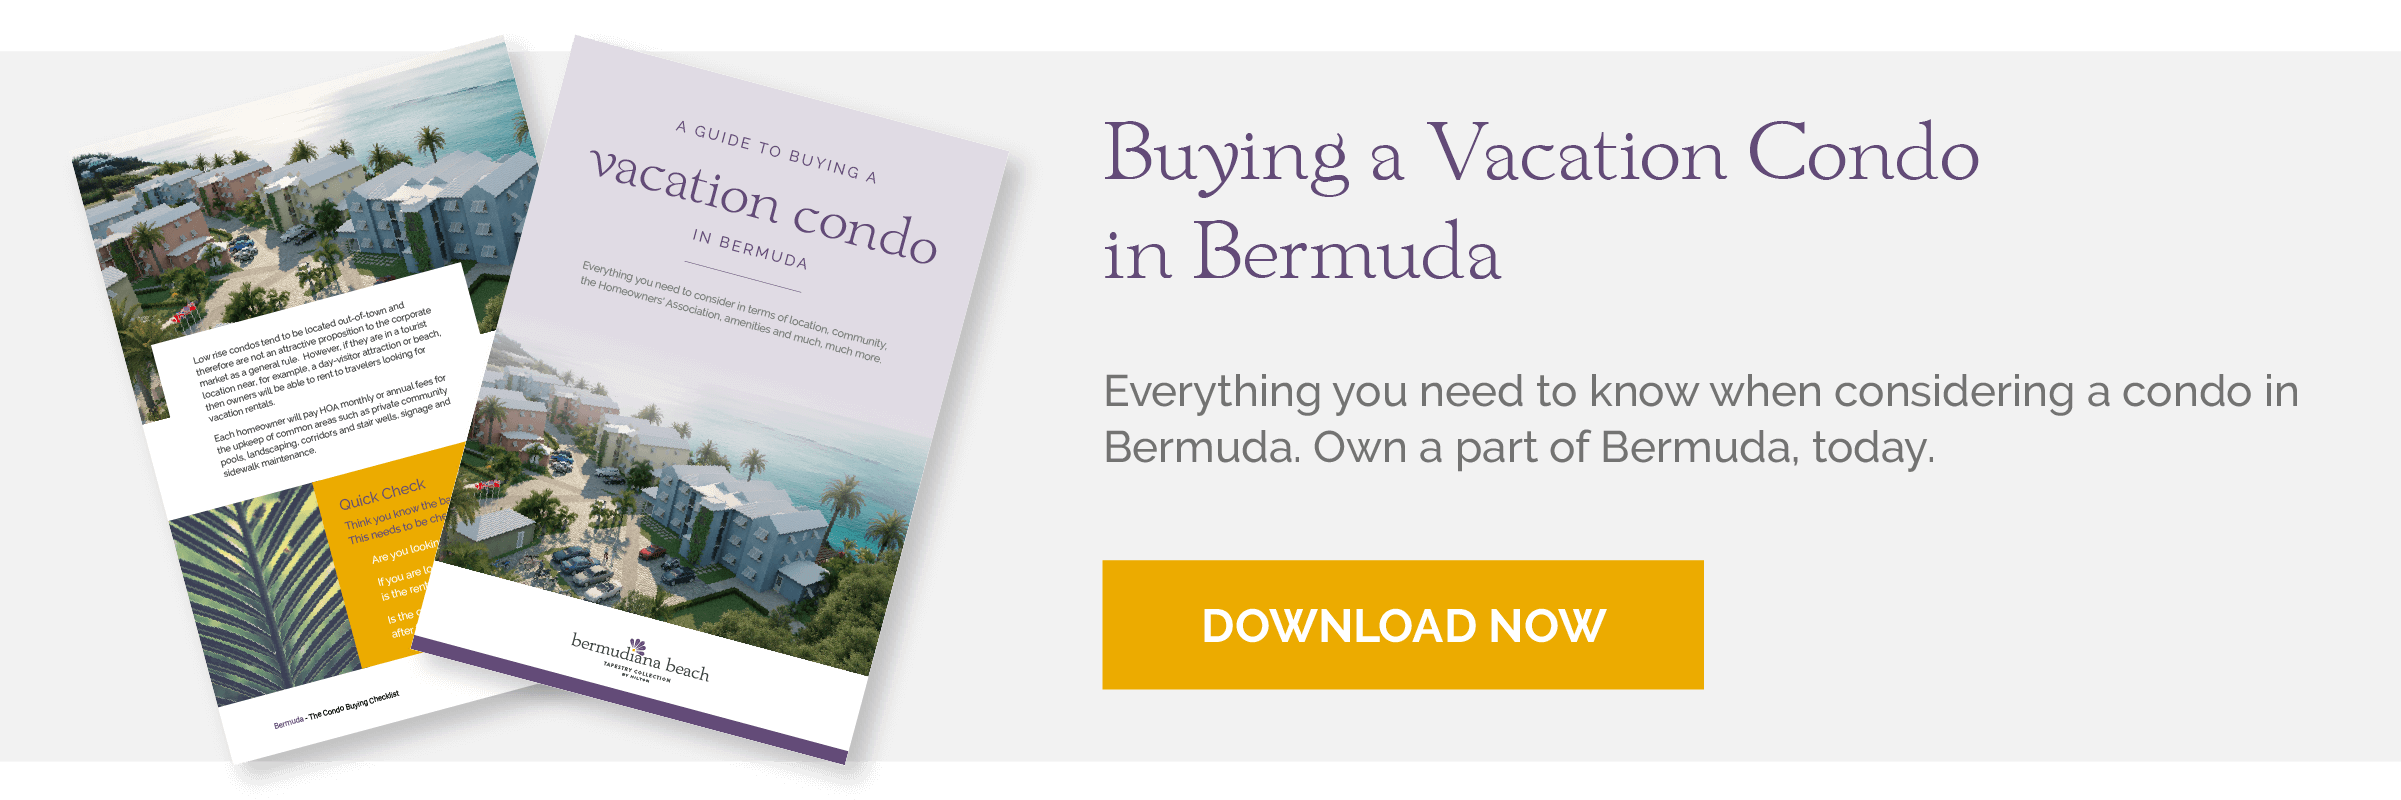 Buying a Vacation in Bermuda Guide